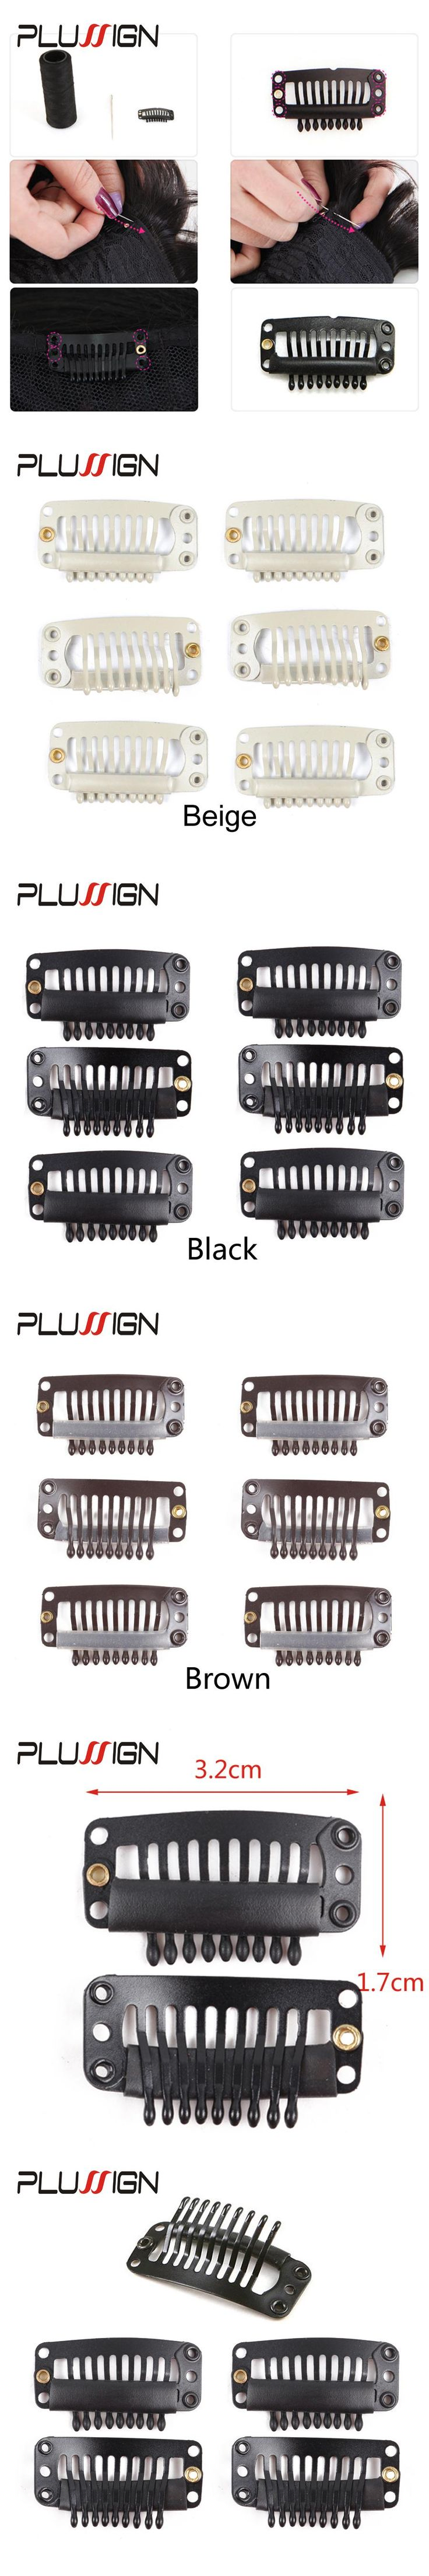 10 Pcs/Lot Plussign Wig Clips Hair Extension Clips Brown Black Beige 32mm U Shape Wire Shape Wig Snap Clips Wig Combs Metal